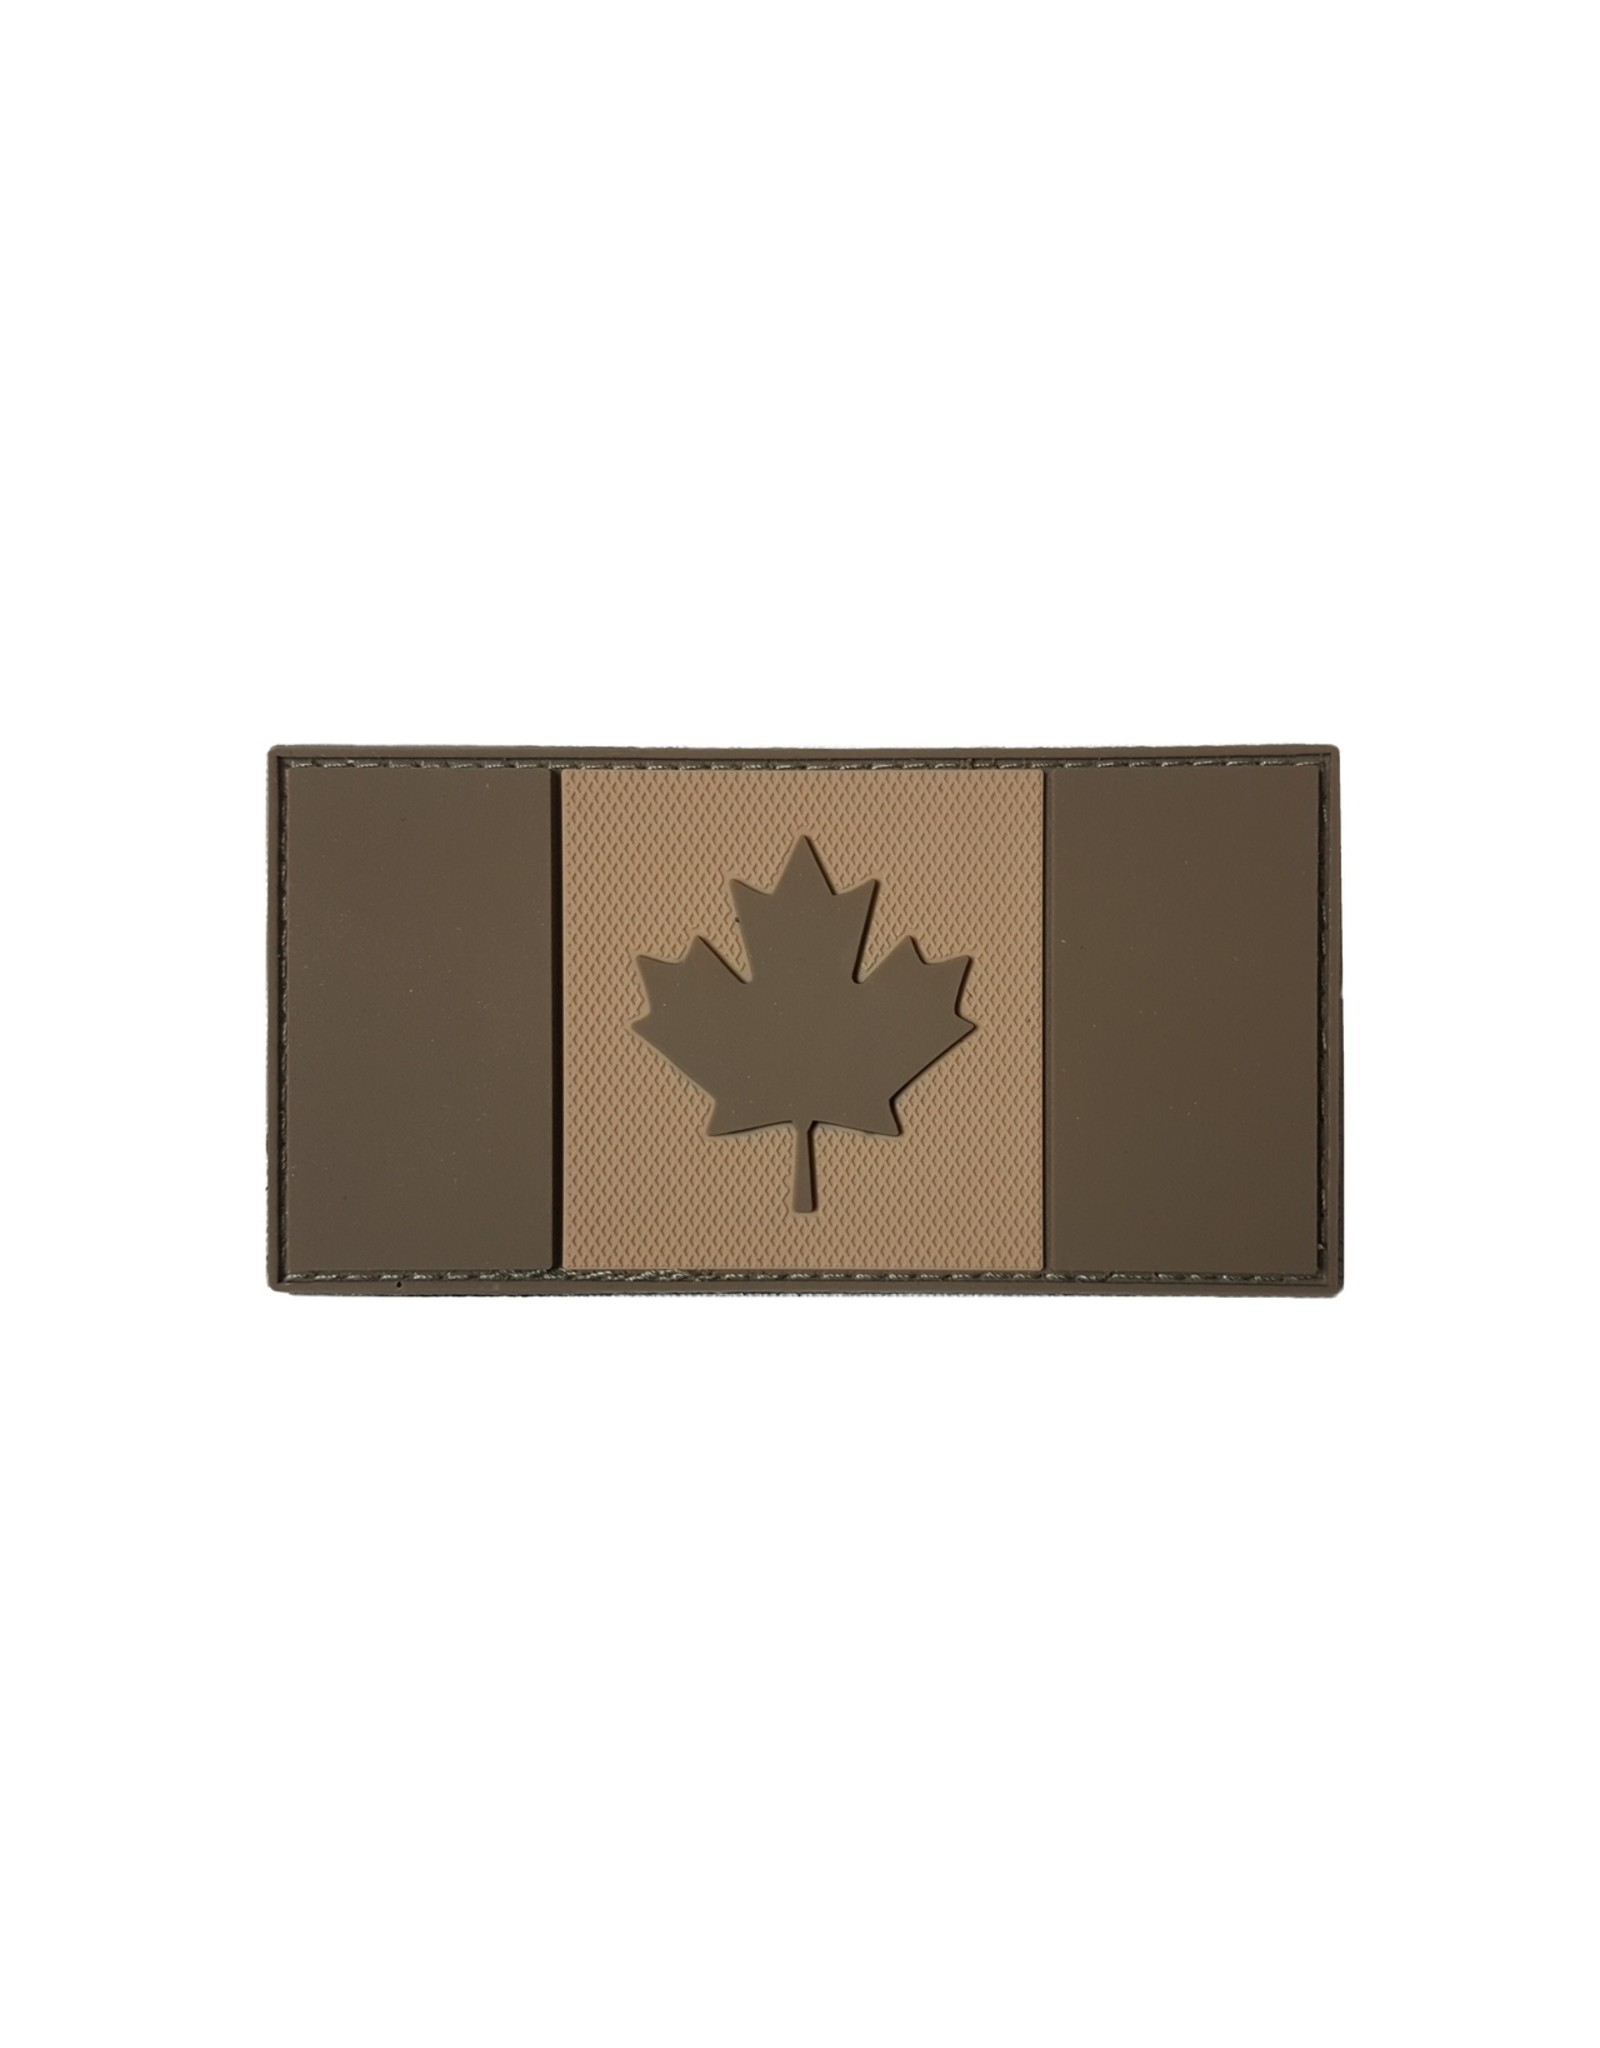 TIC Patch - CANADA FLAG 1.5X3 T&T